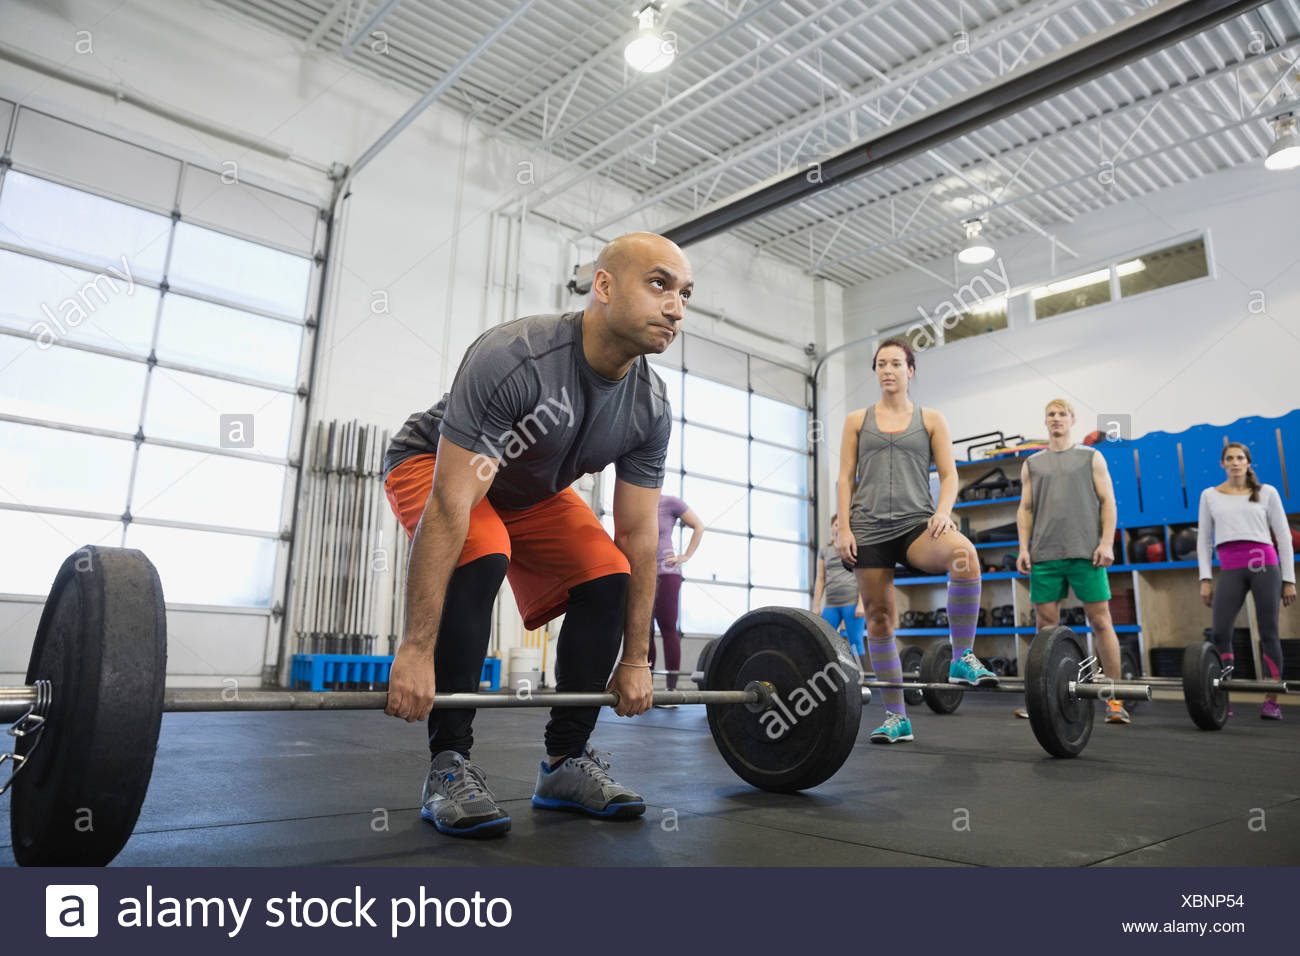 Instructor demonstrating proper deadlift technique - Stock Image